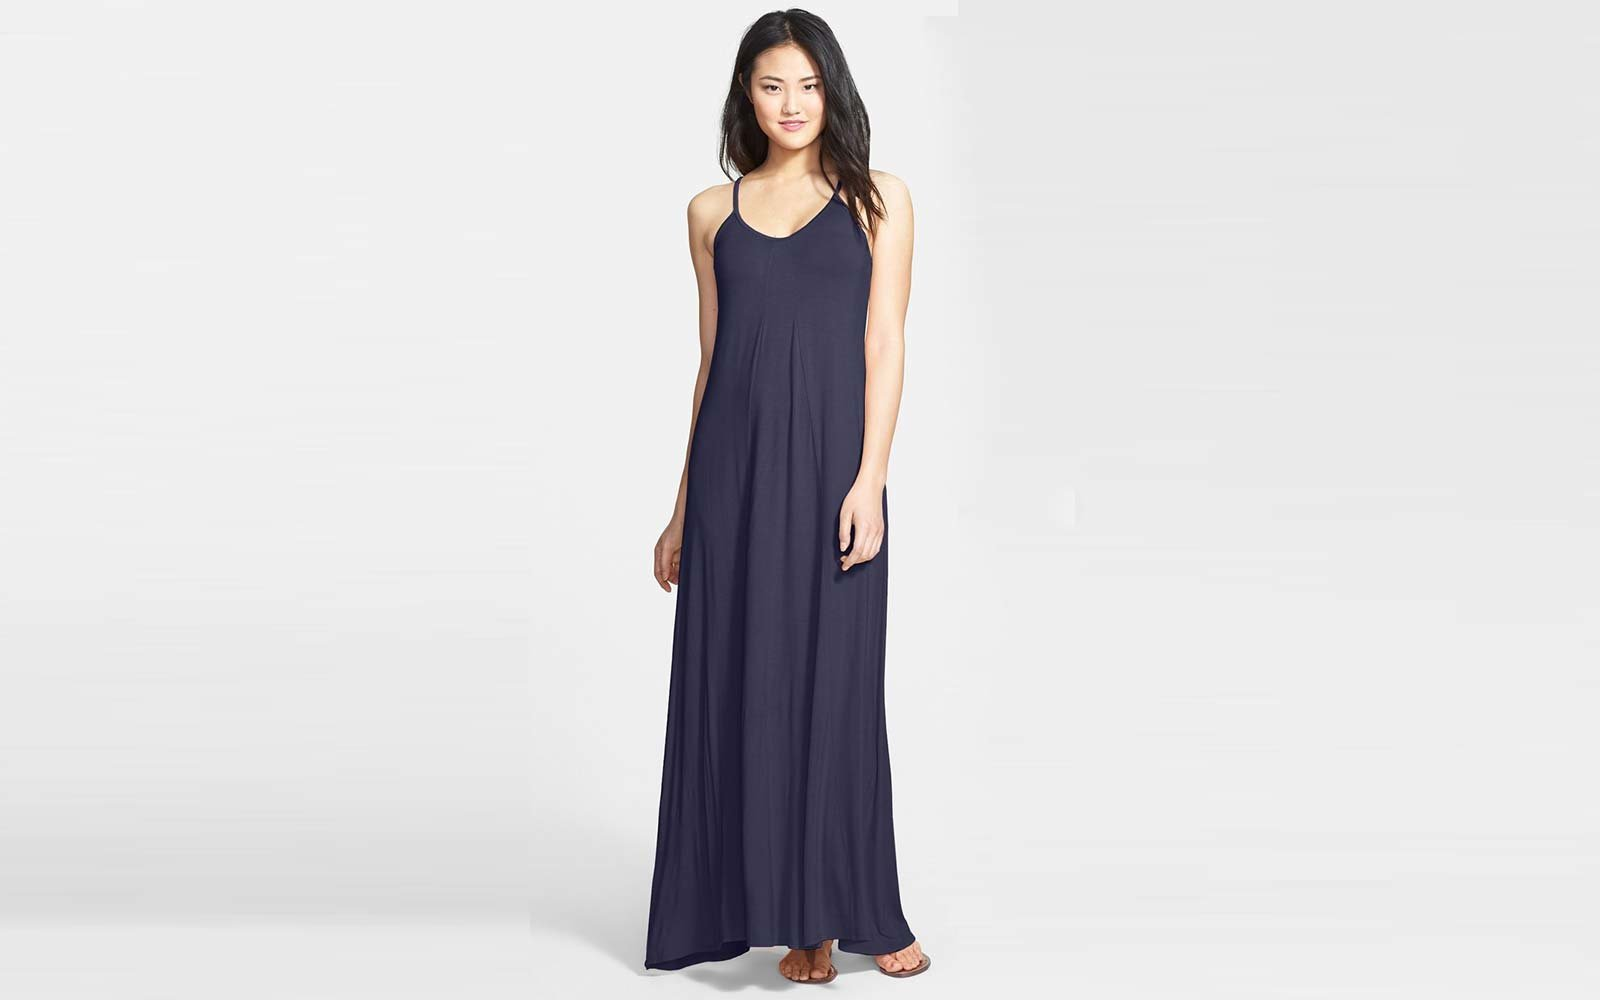 c1bcf5973c87 Loveappella Maxi Dress in Midnight Blue